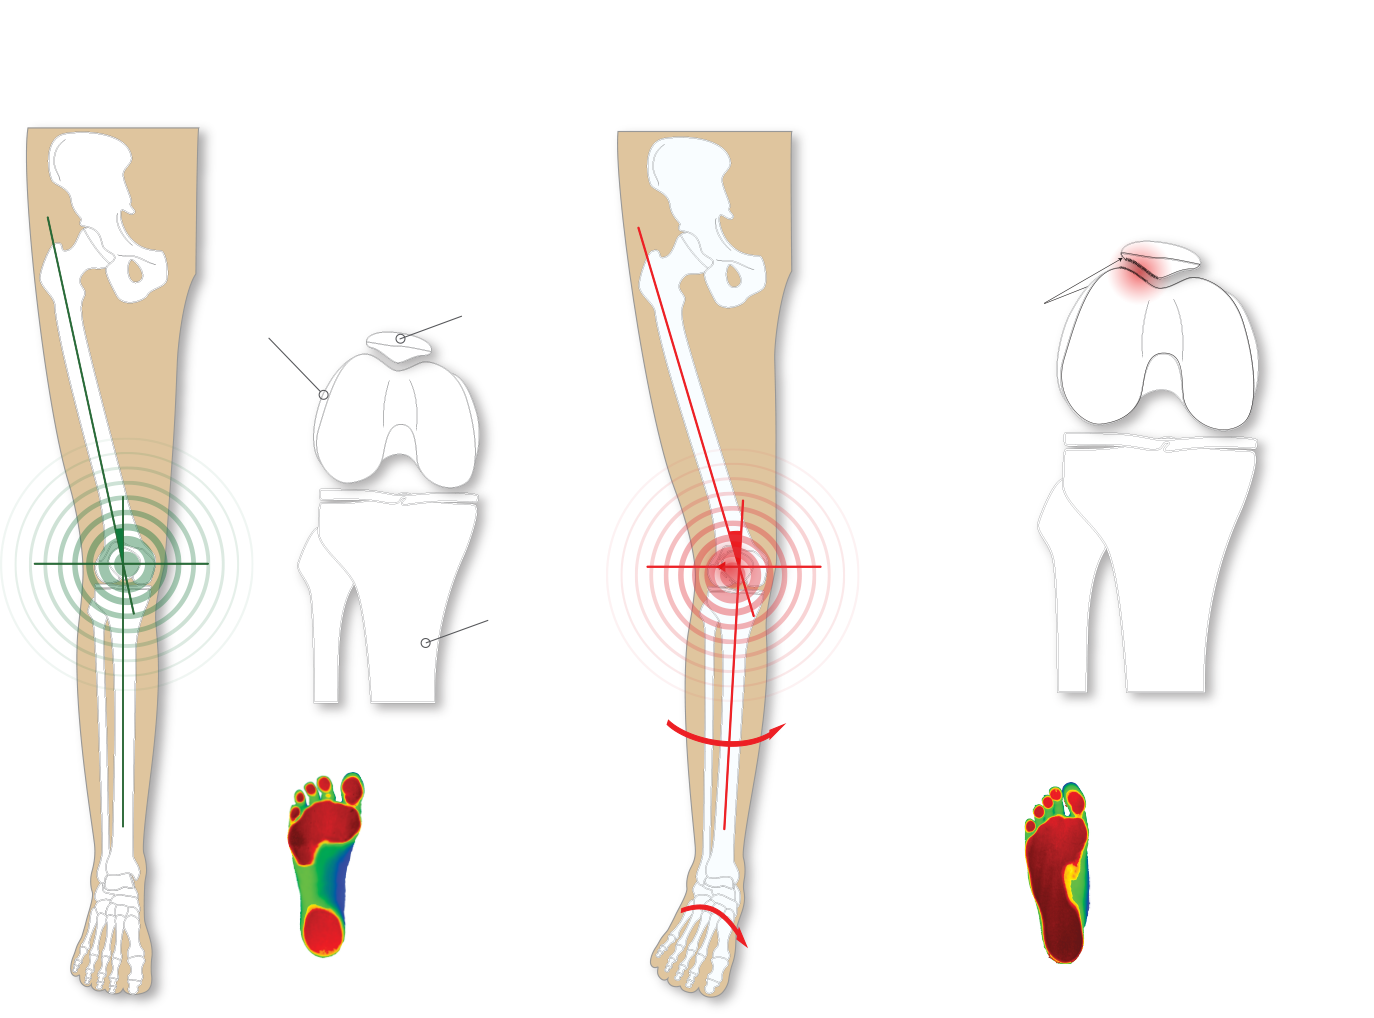 Optimal foot vs Over pronated foot and knee pain